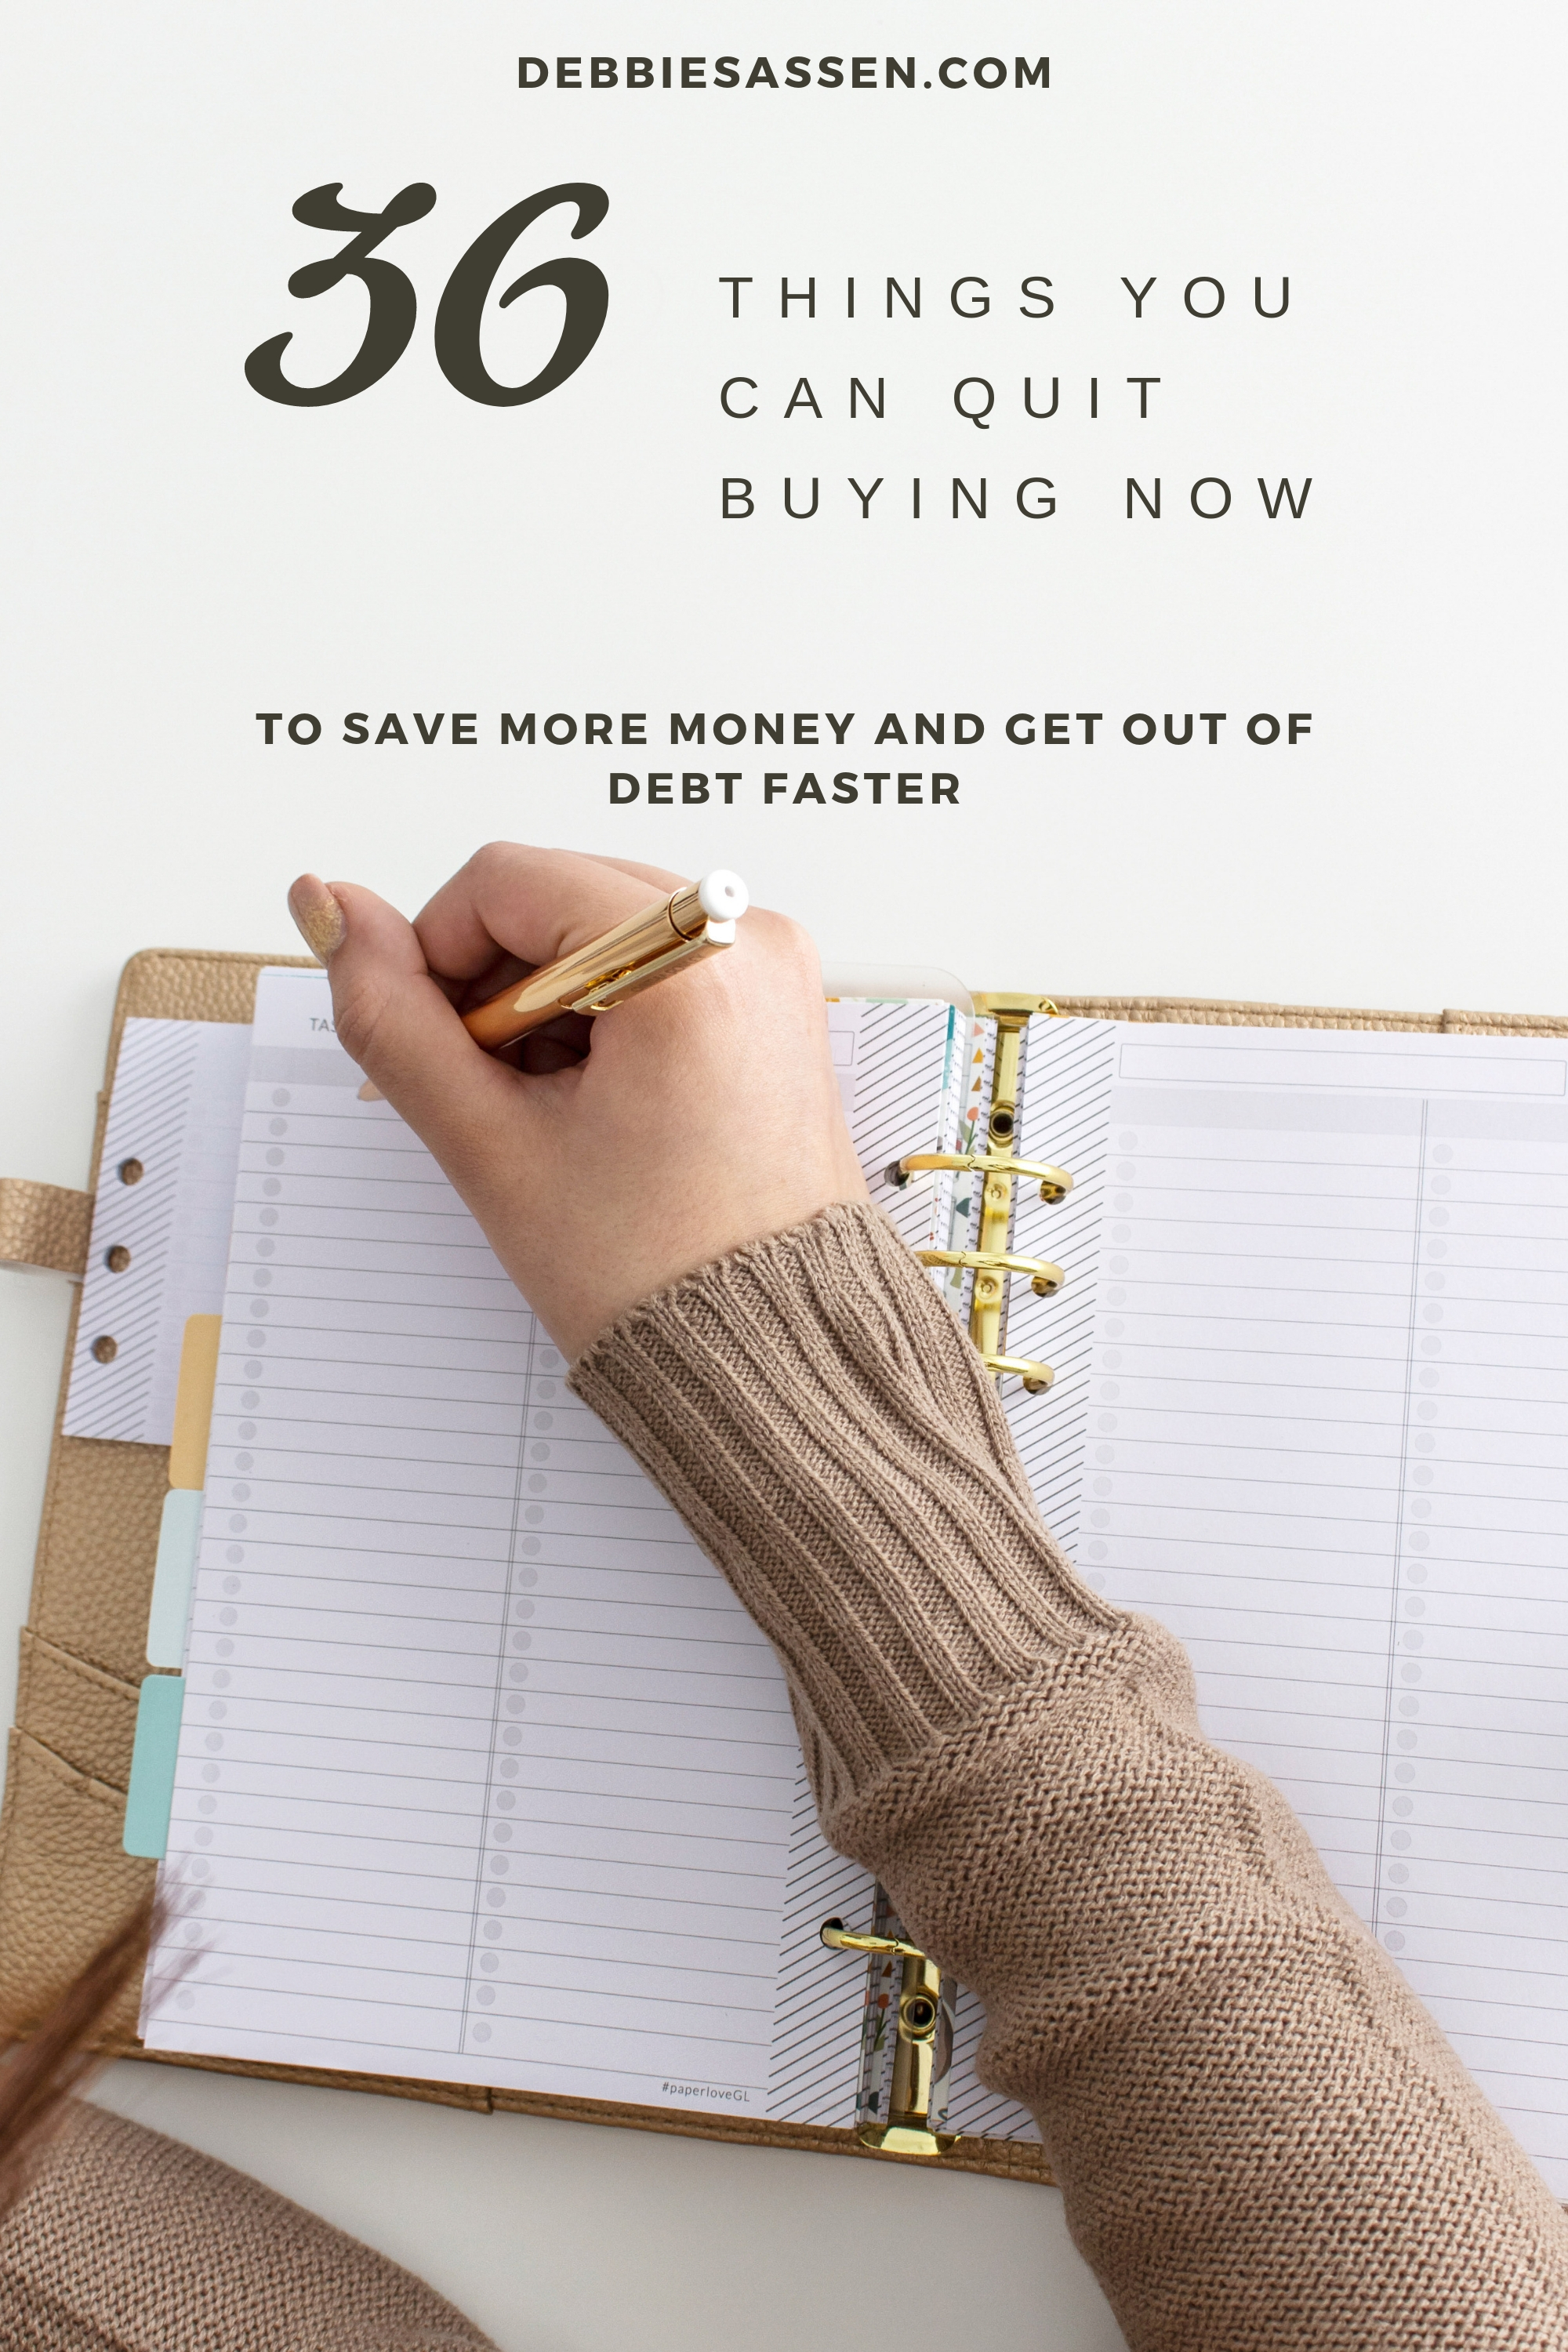 36 Thing You Can Quit Buying Now to Get Out of Debt Faster Pin - Debbie Sassen